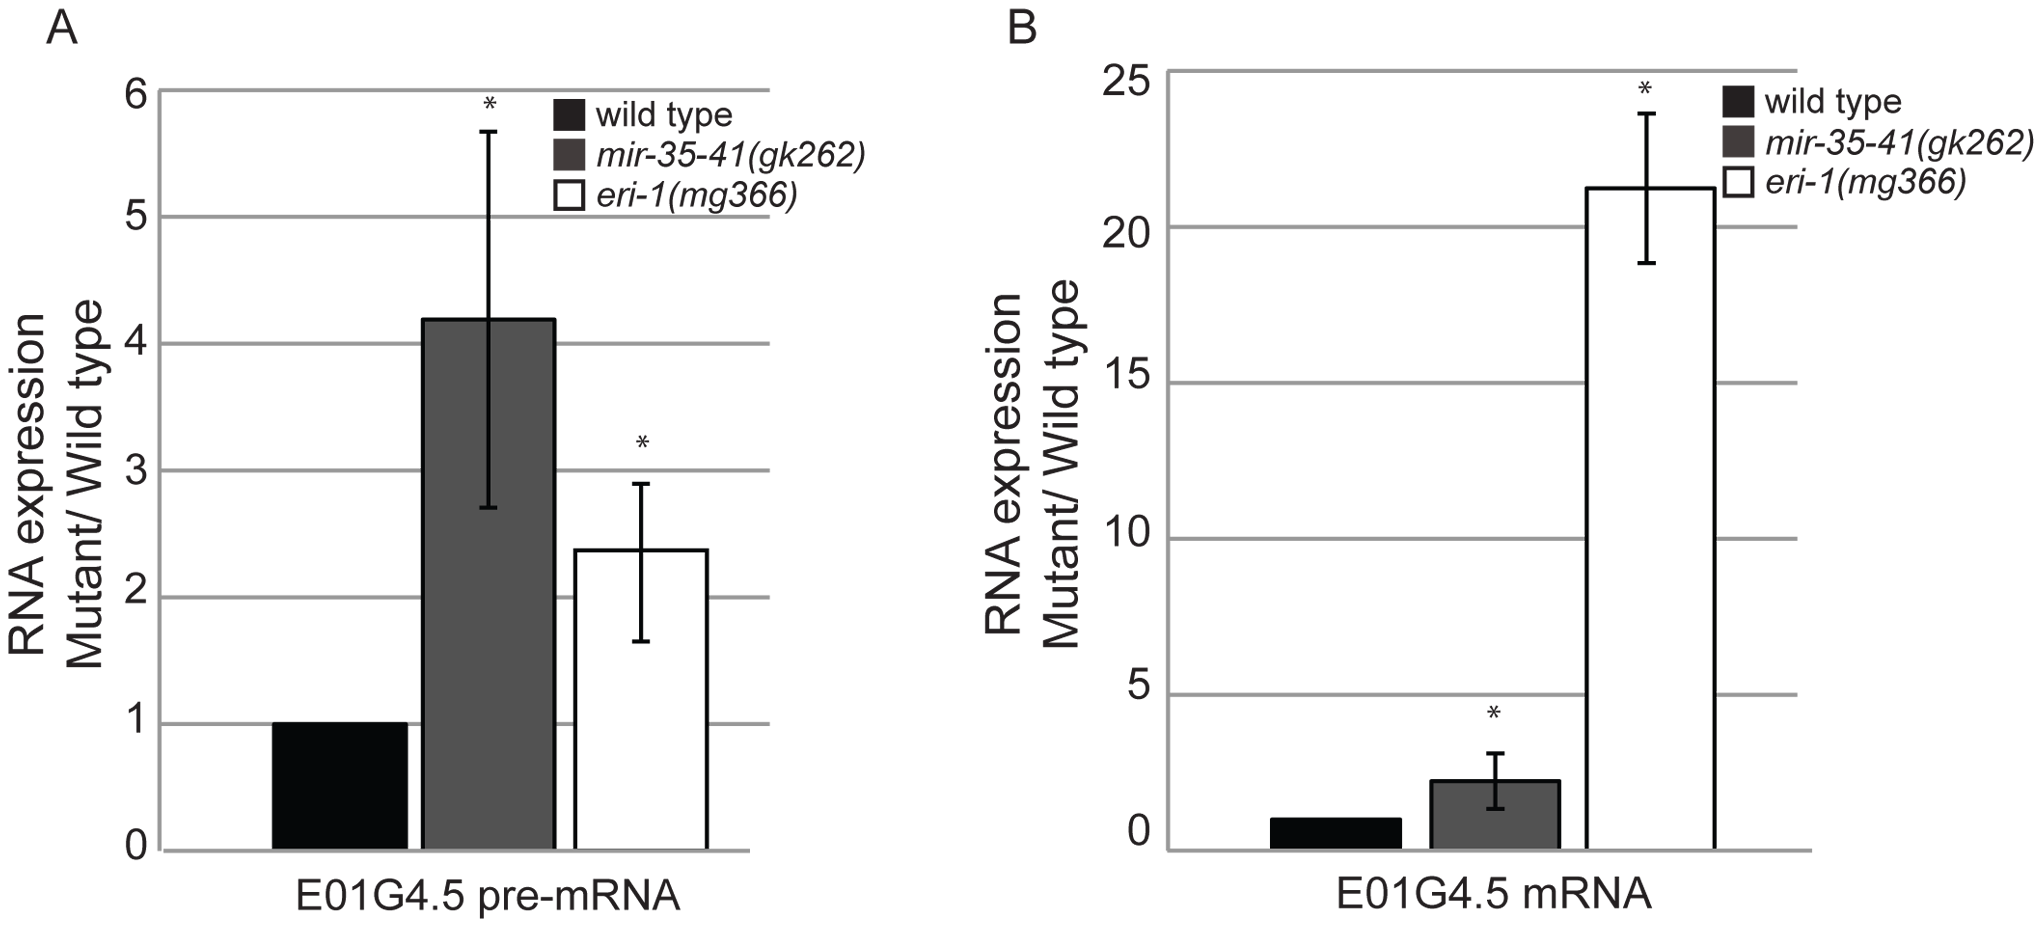 Mis-regulation of the E01G4.5 endo–siRNA target in <i>mir-35-41</i> mutants.